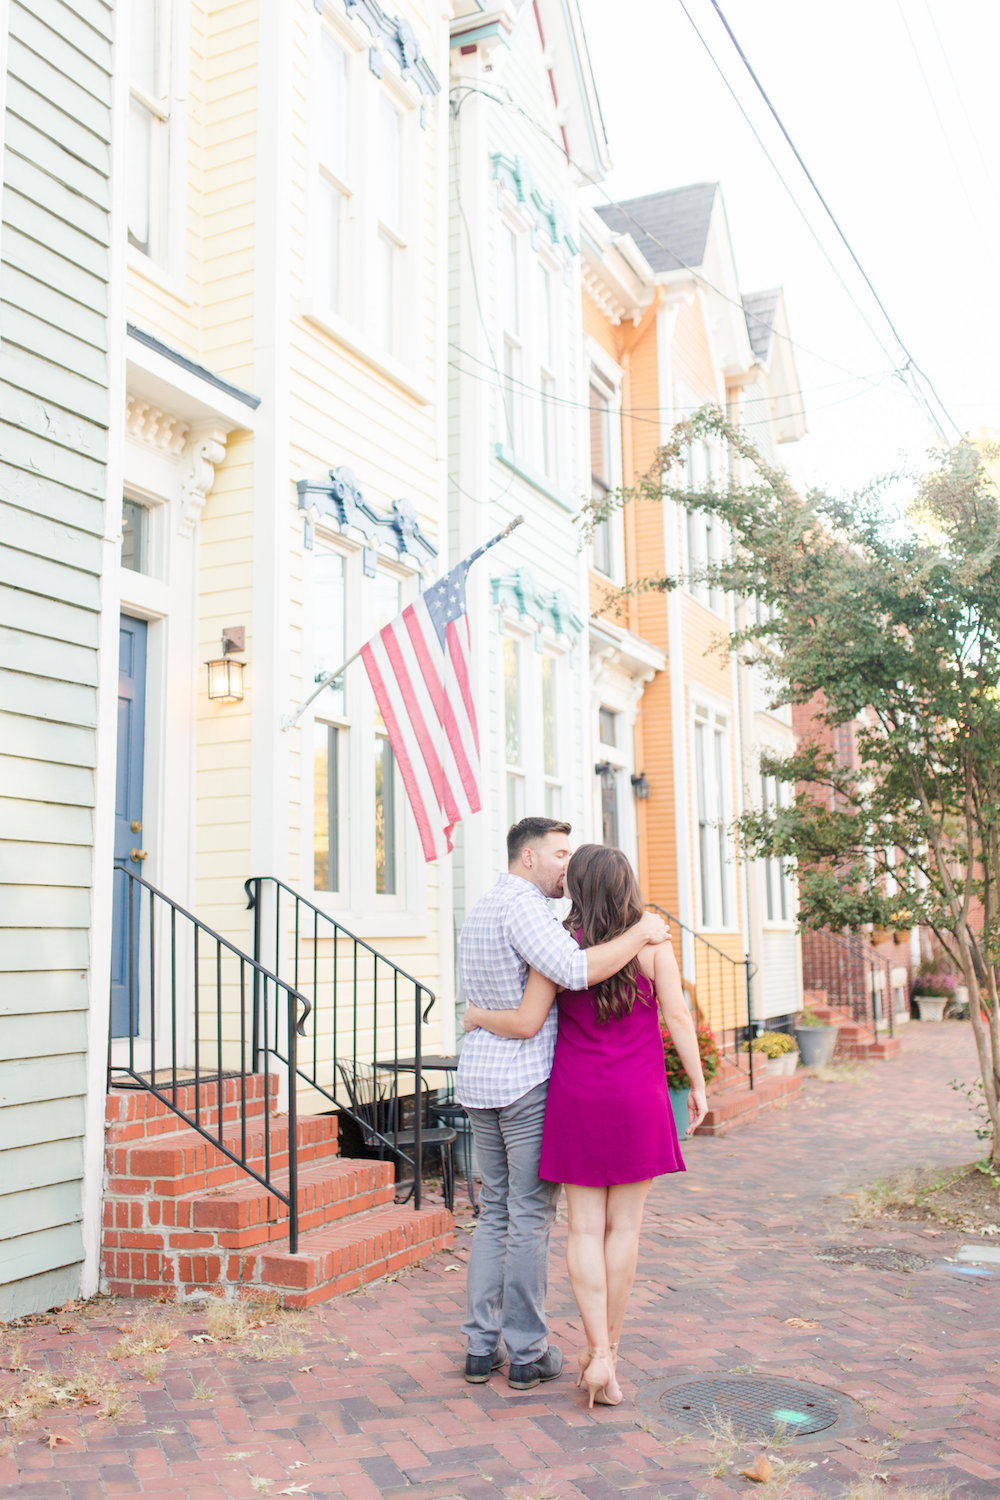 Fall Old Town Alexandria Engagement Photos Megan Kelsey Photography and Sincerely Pete Events - 6.jpg